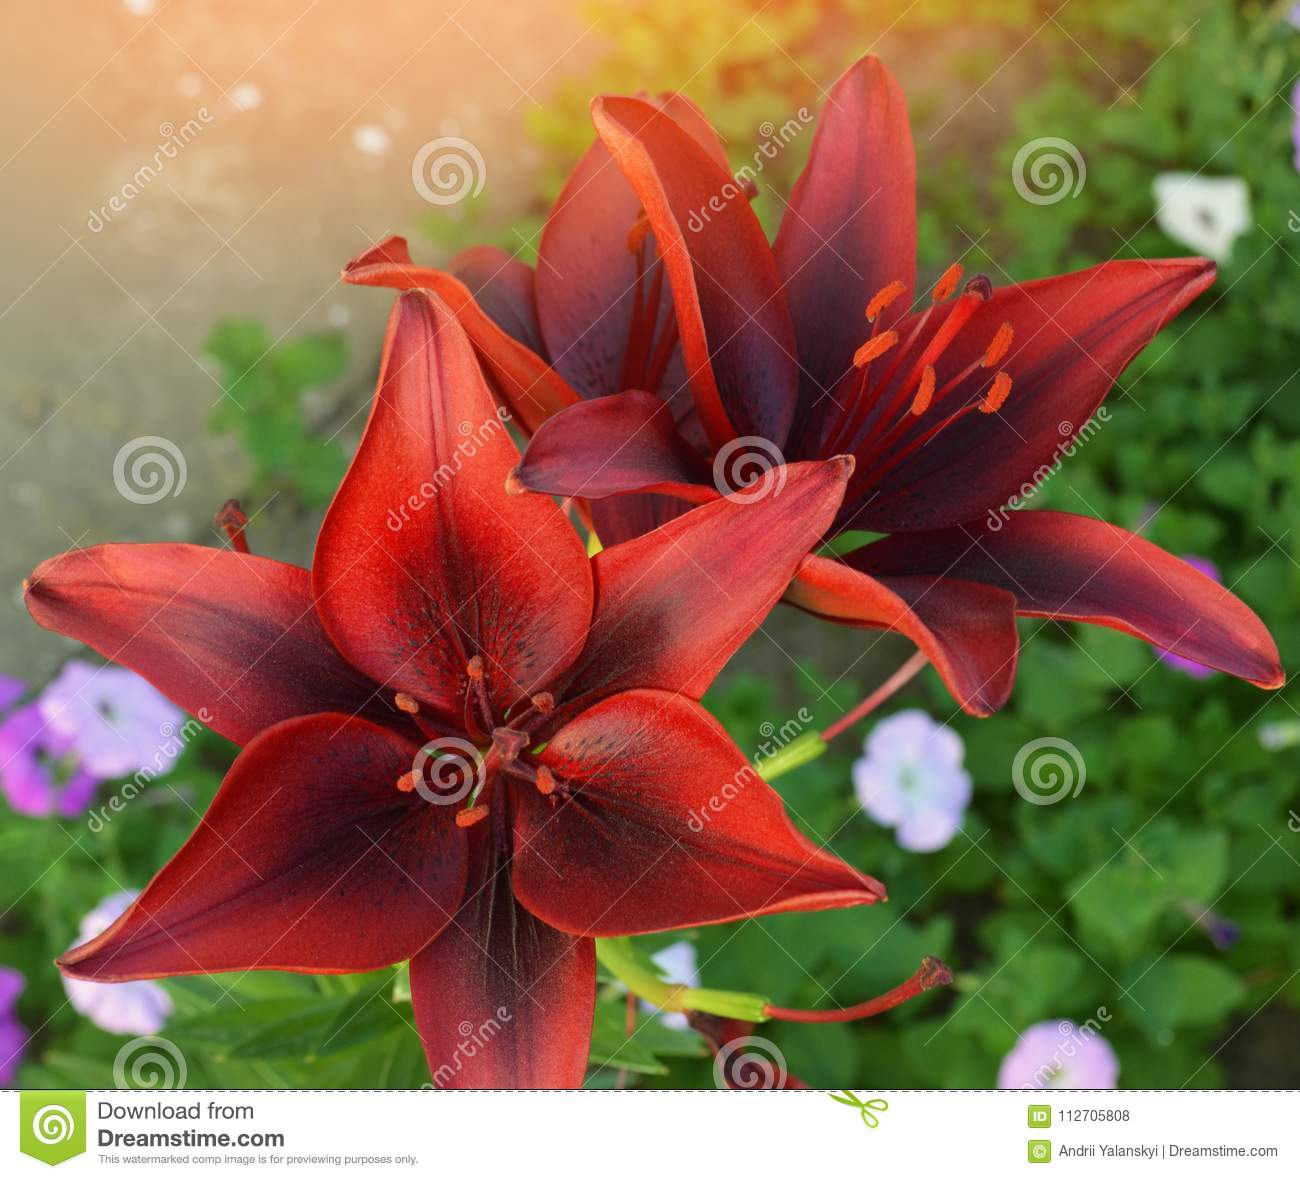 Beautiful Red Lily Flowers In The Garden Nature Wallpapers Summer